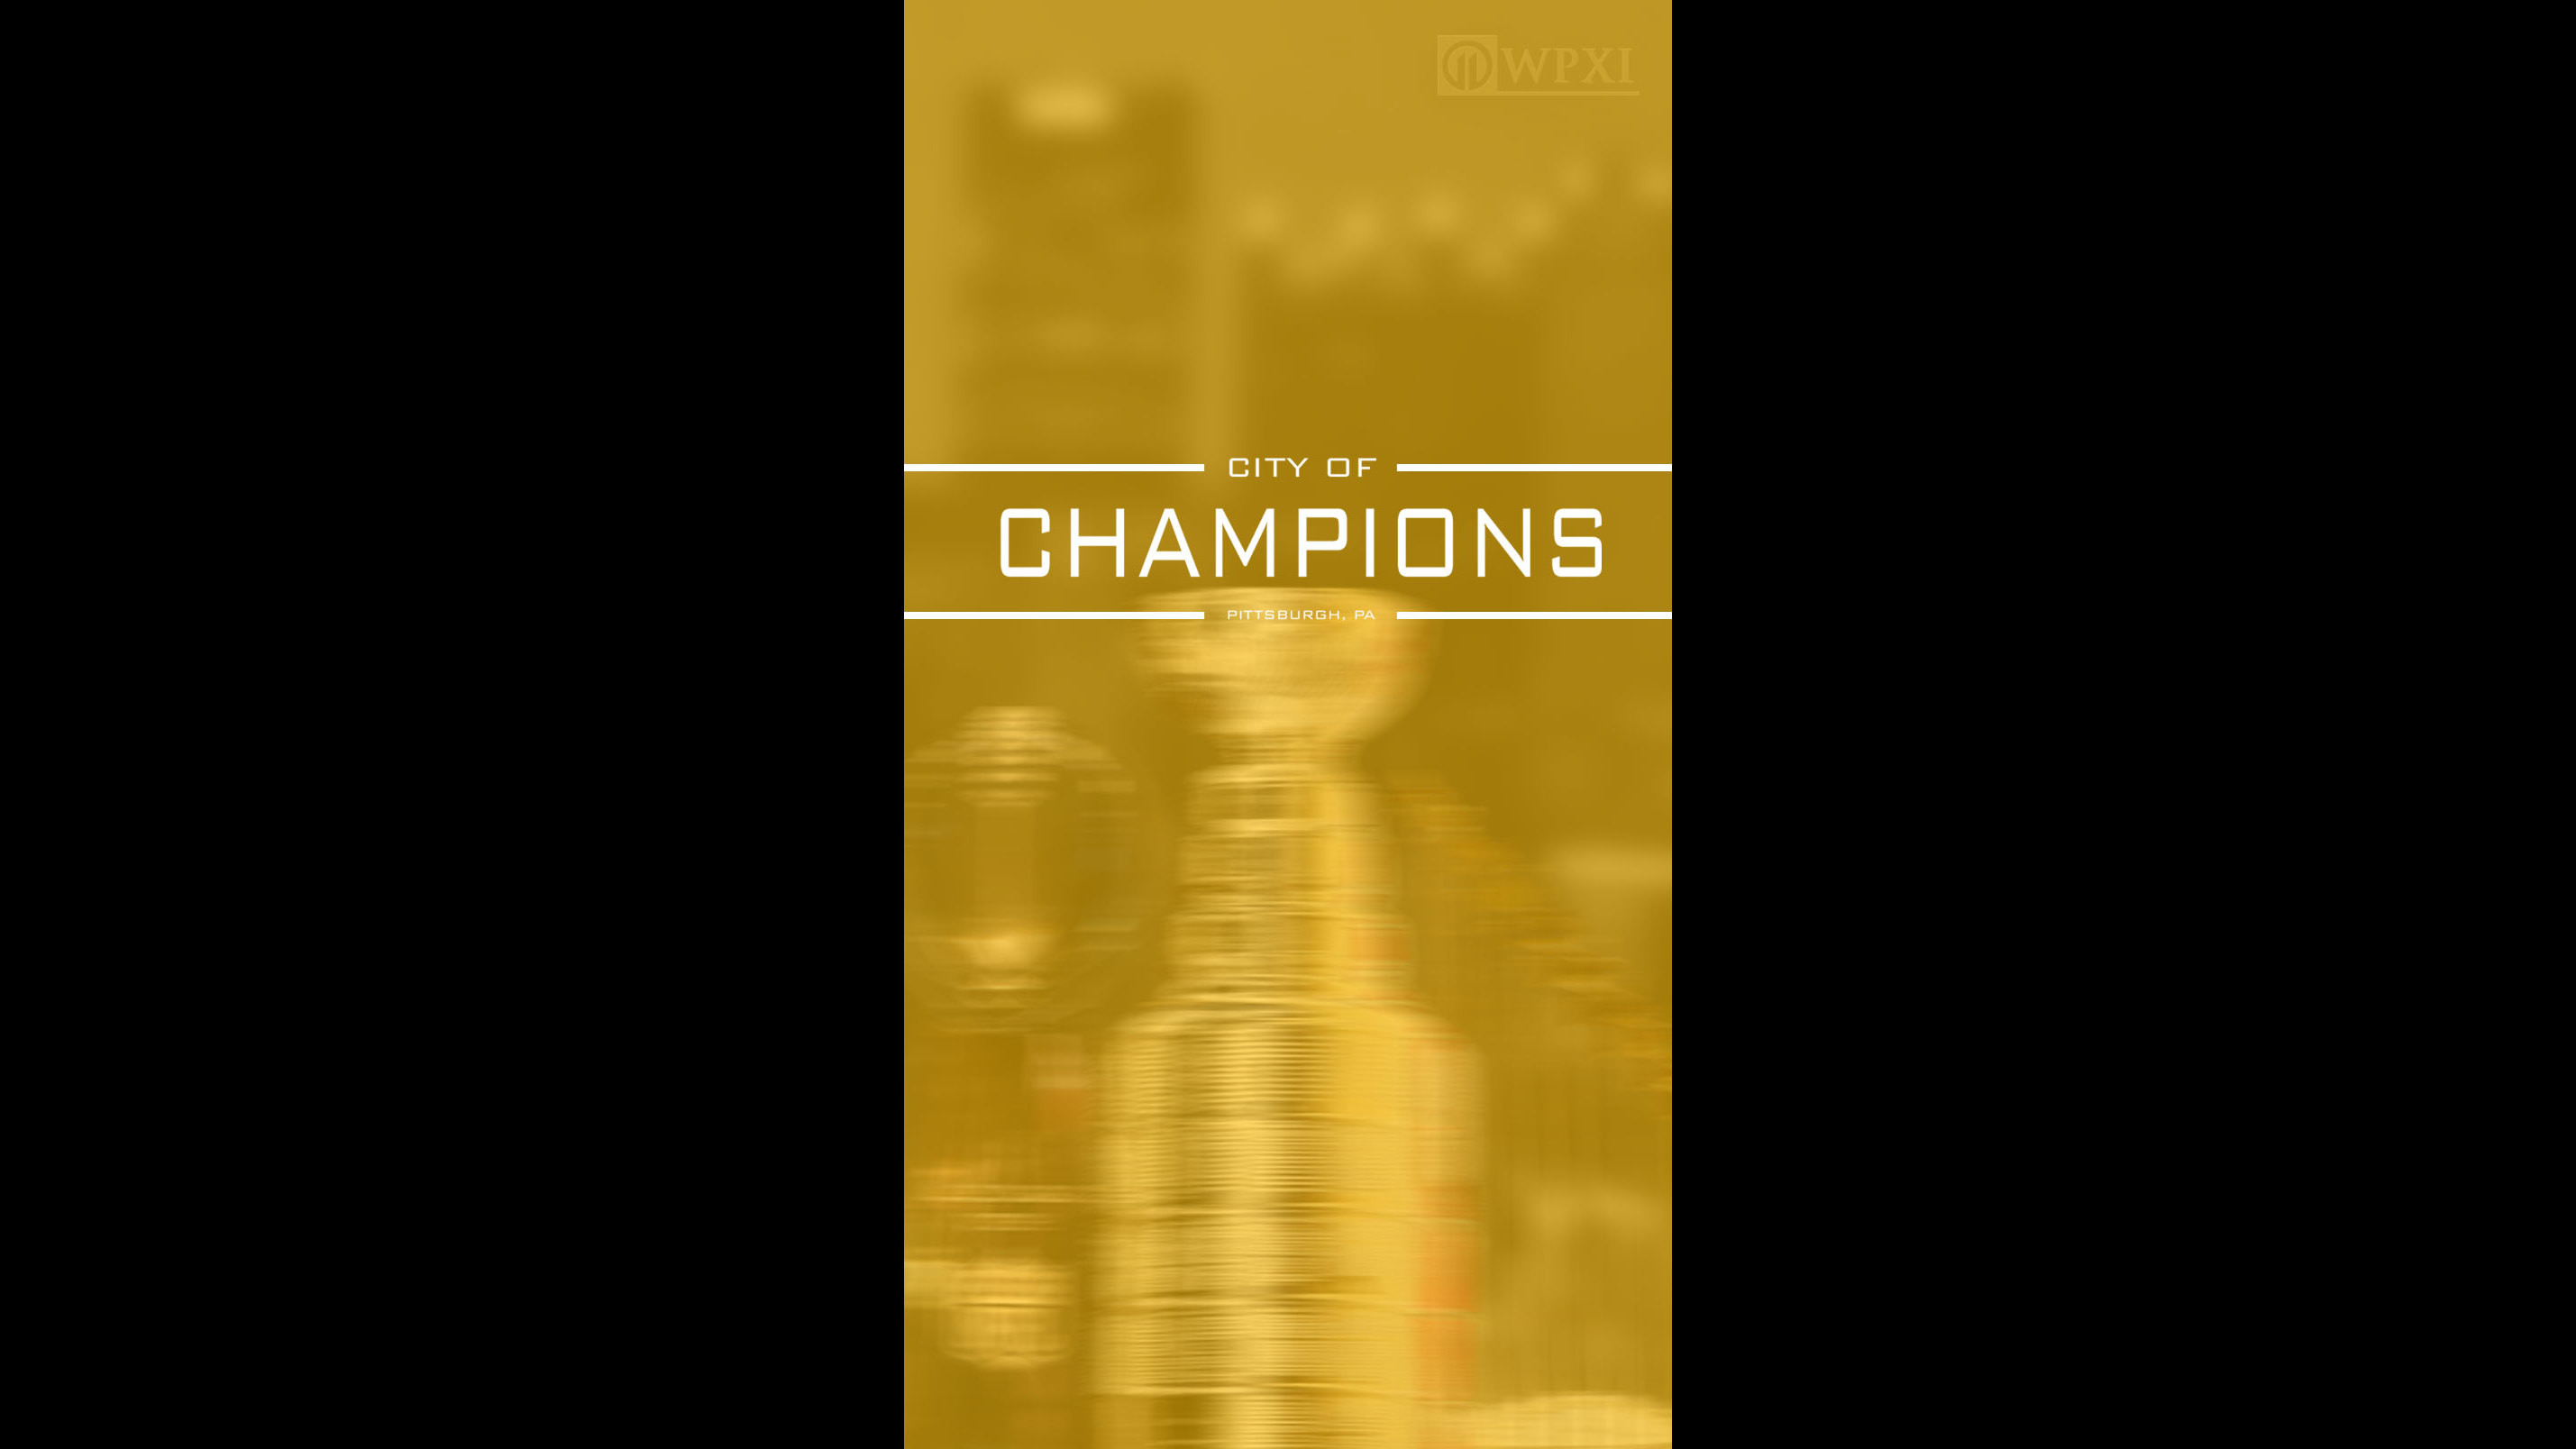 Show your Pittsburgh pride with CITY OF CHAMPIONS wallpaper!